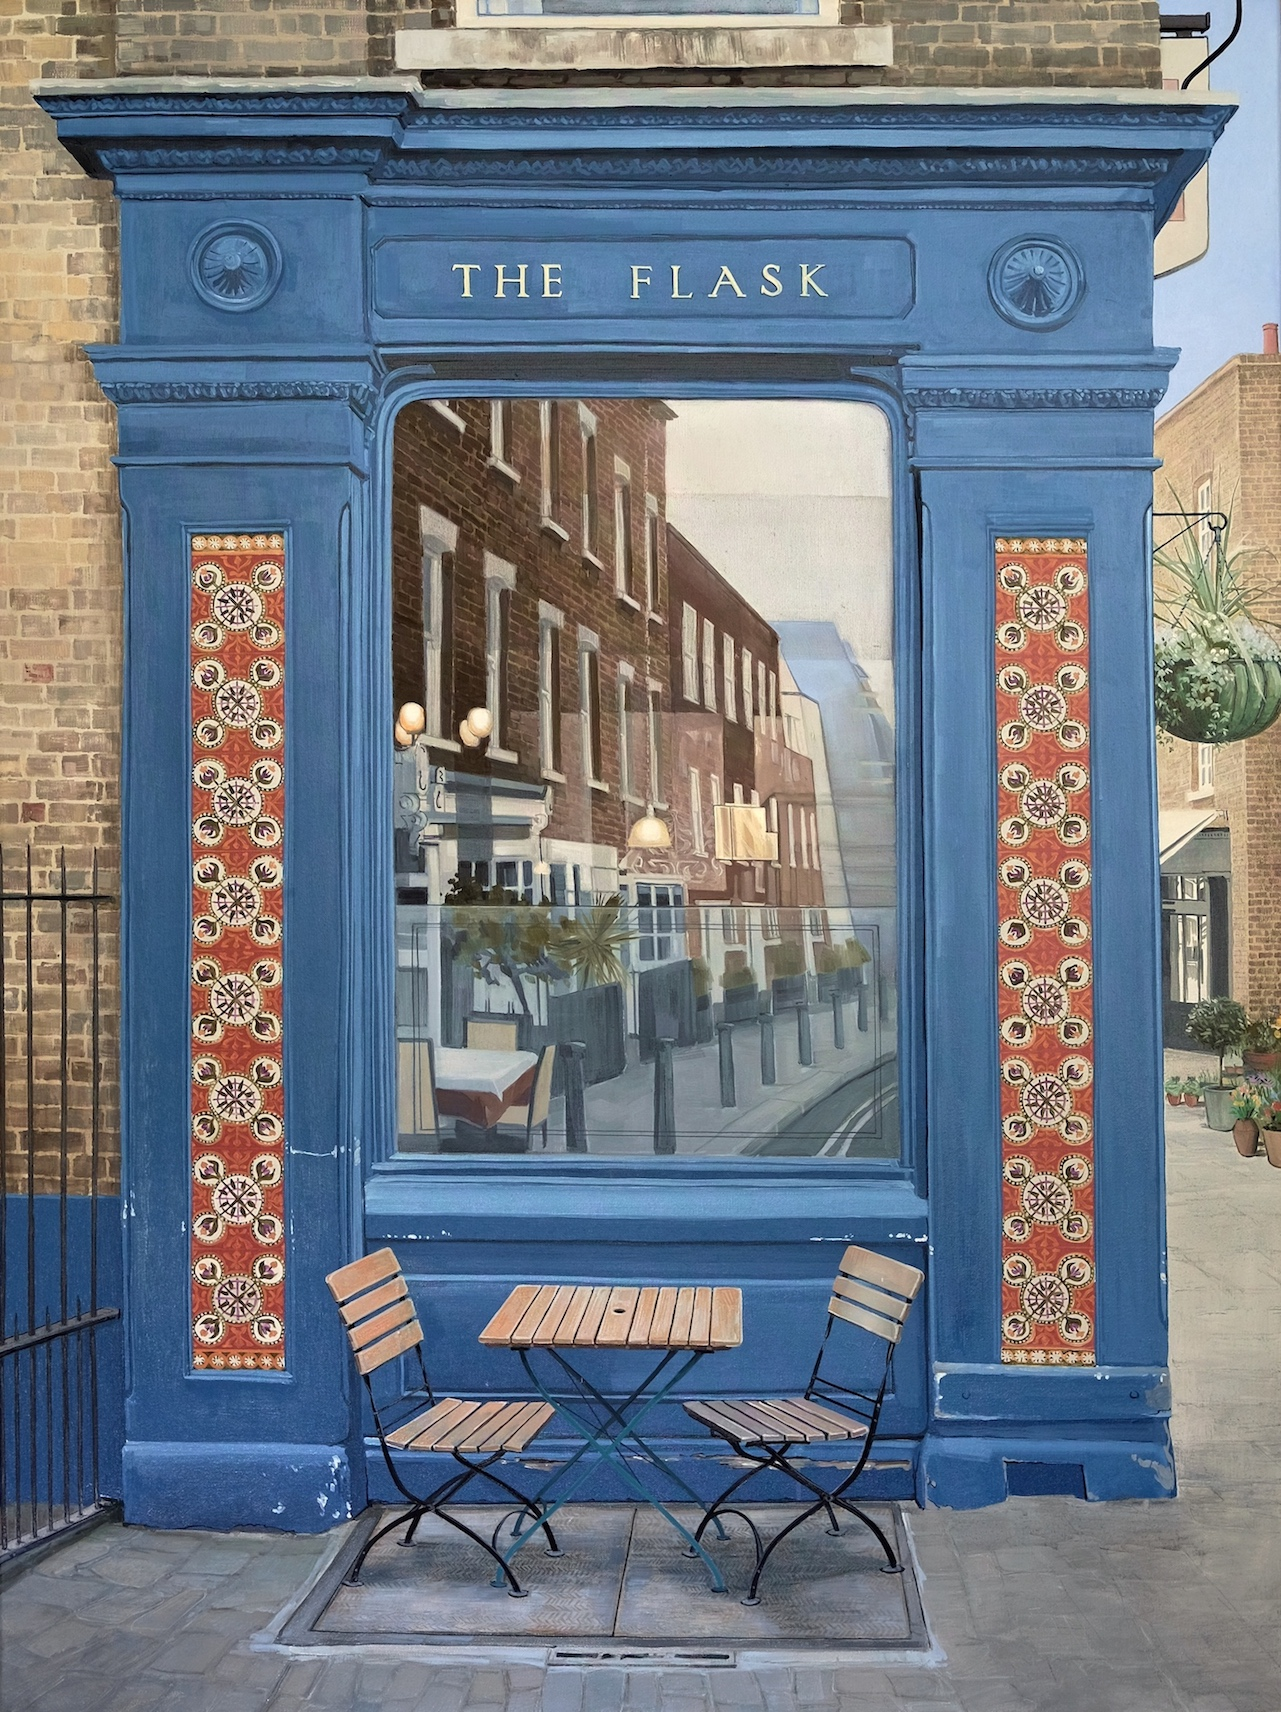 The Flask, NW3